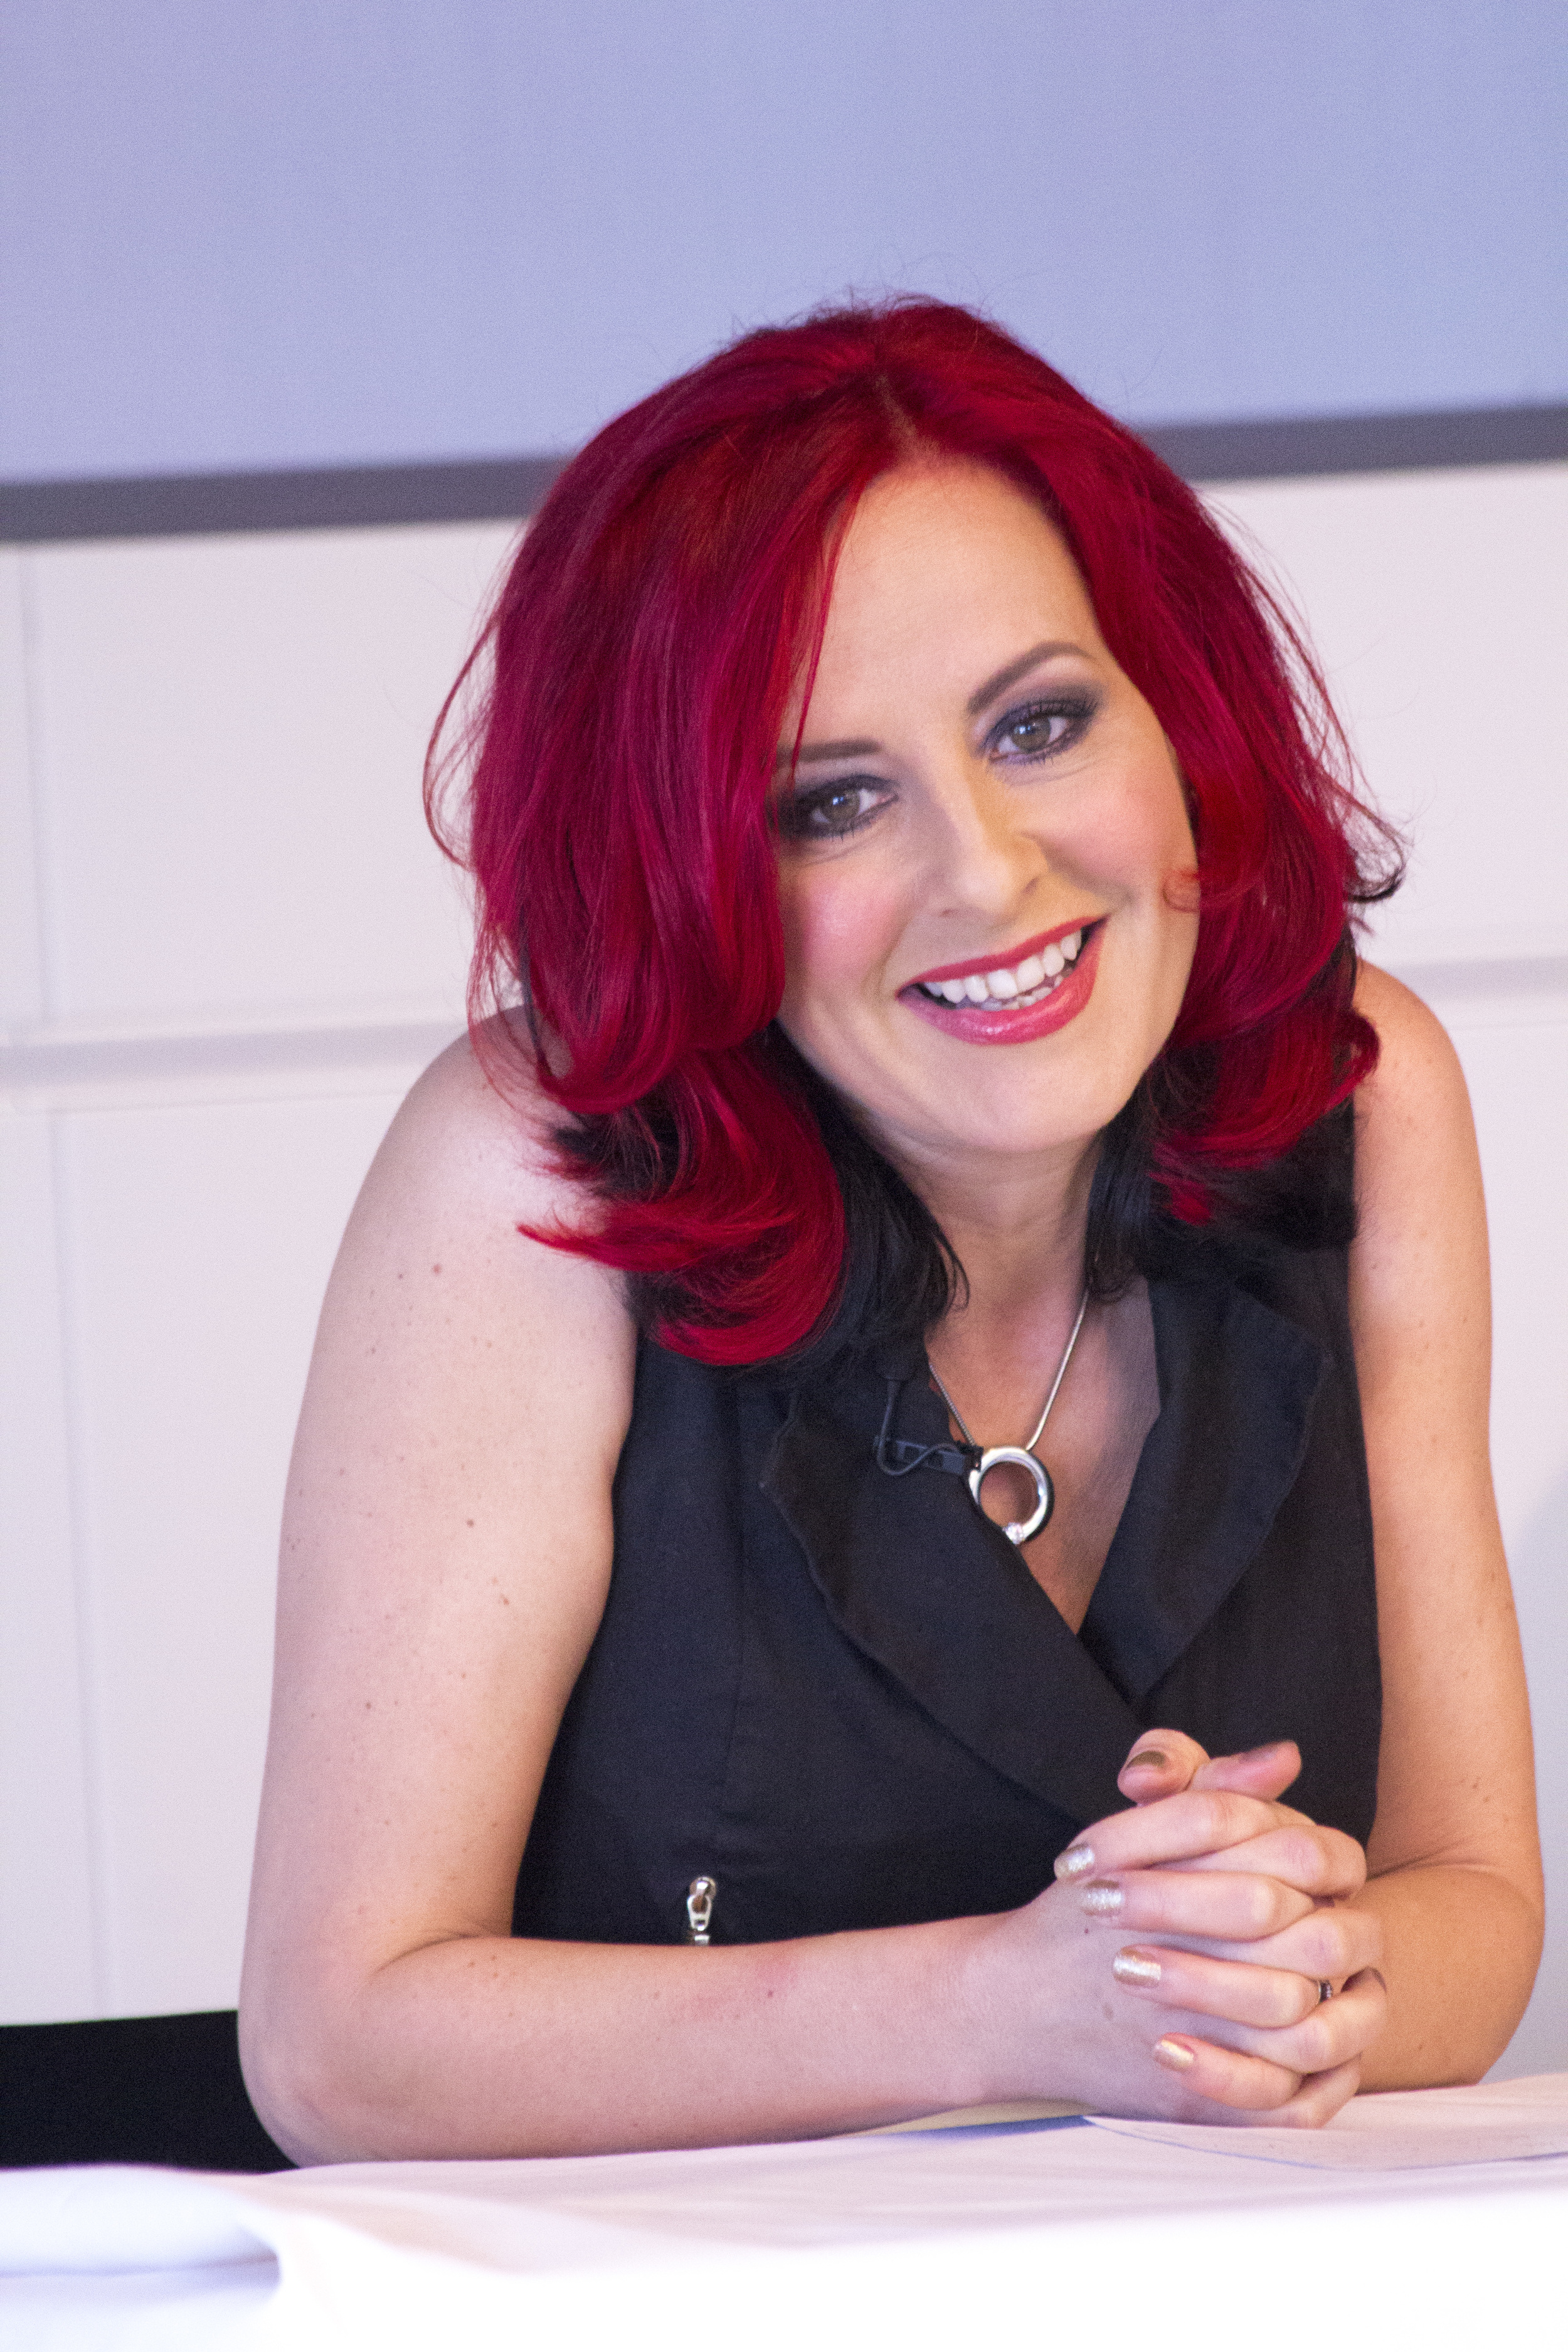 Carrie Grant, TV Presenter and Vocal Coach. Carrie participated in the Question &Answer Panel debate.